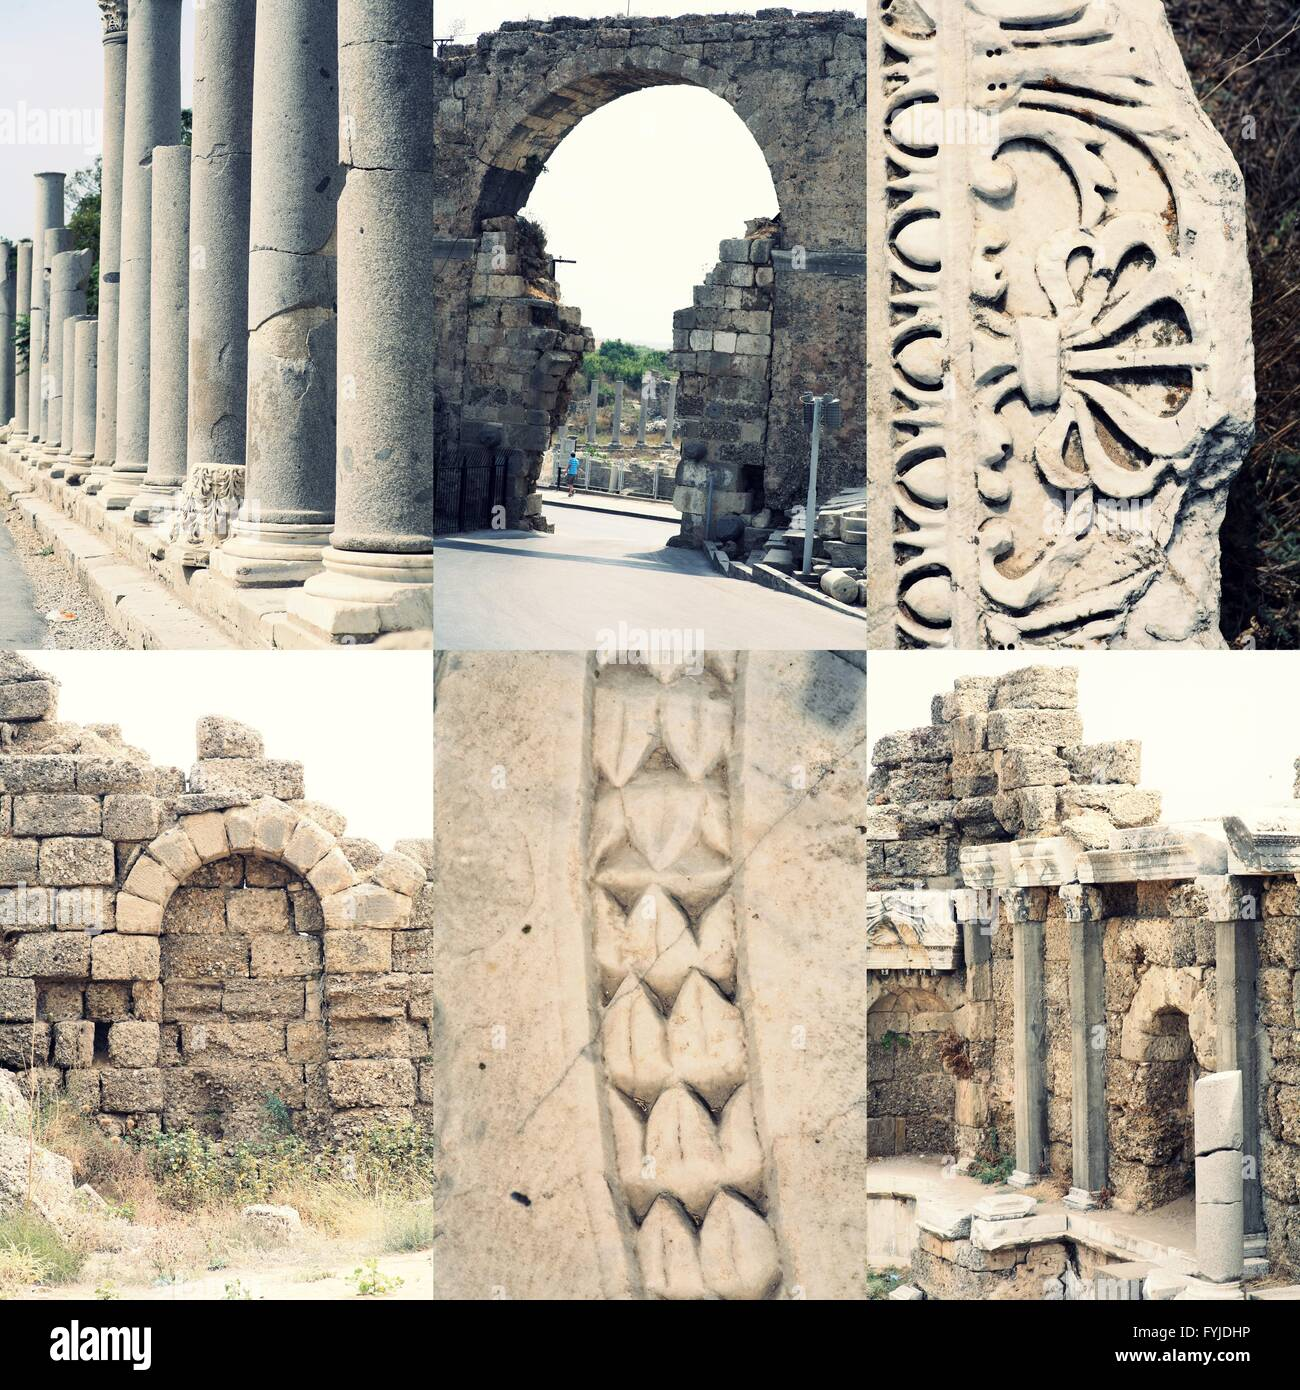 Ancient roman architecture - ruined buildings with pillars and weathered  marble ornament, famous place Side (Turkey) Stock Photo